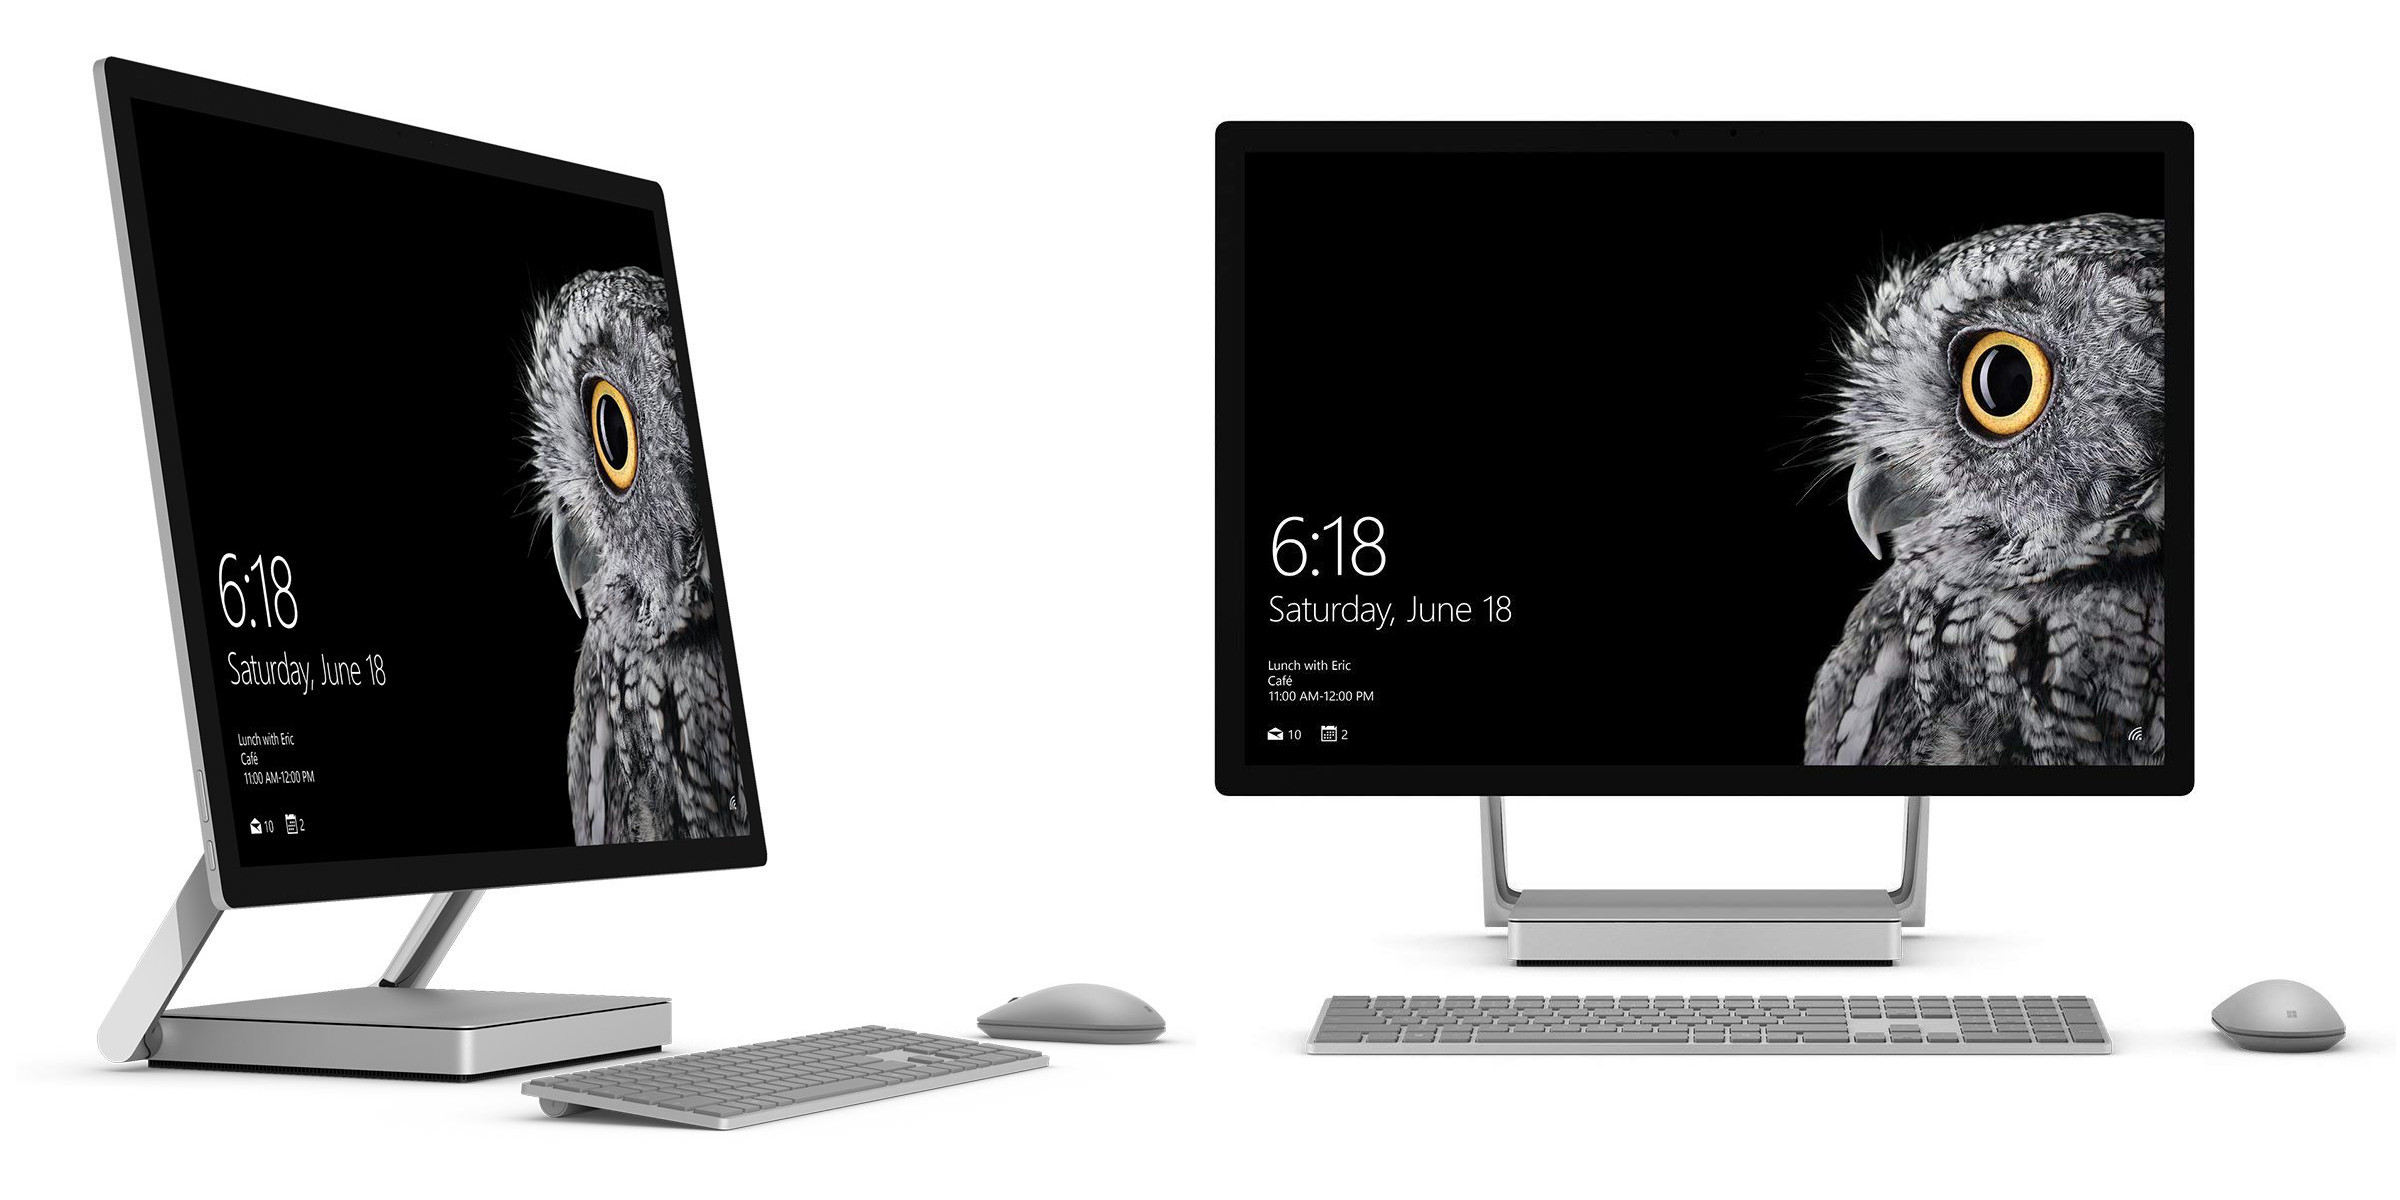 Amazon has Microsoft Surface Studio bundles at up to $500 off today, refurbished from $1,359